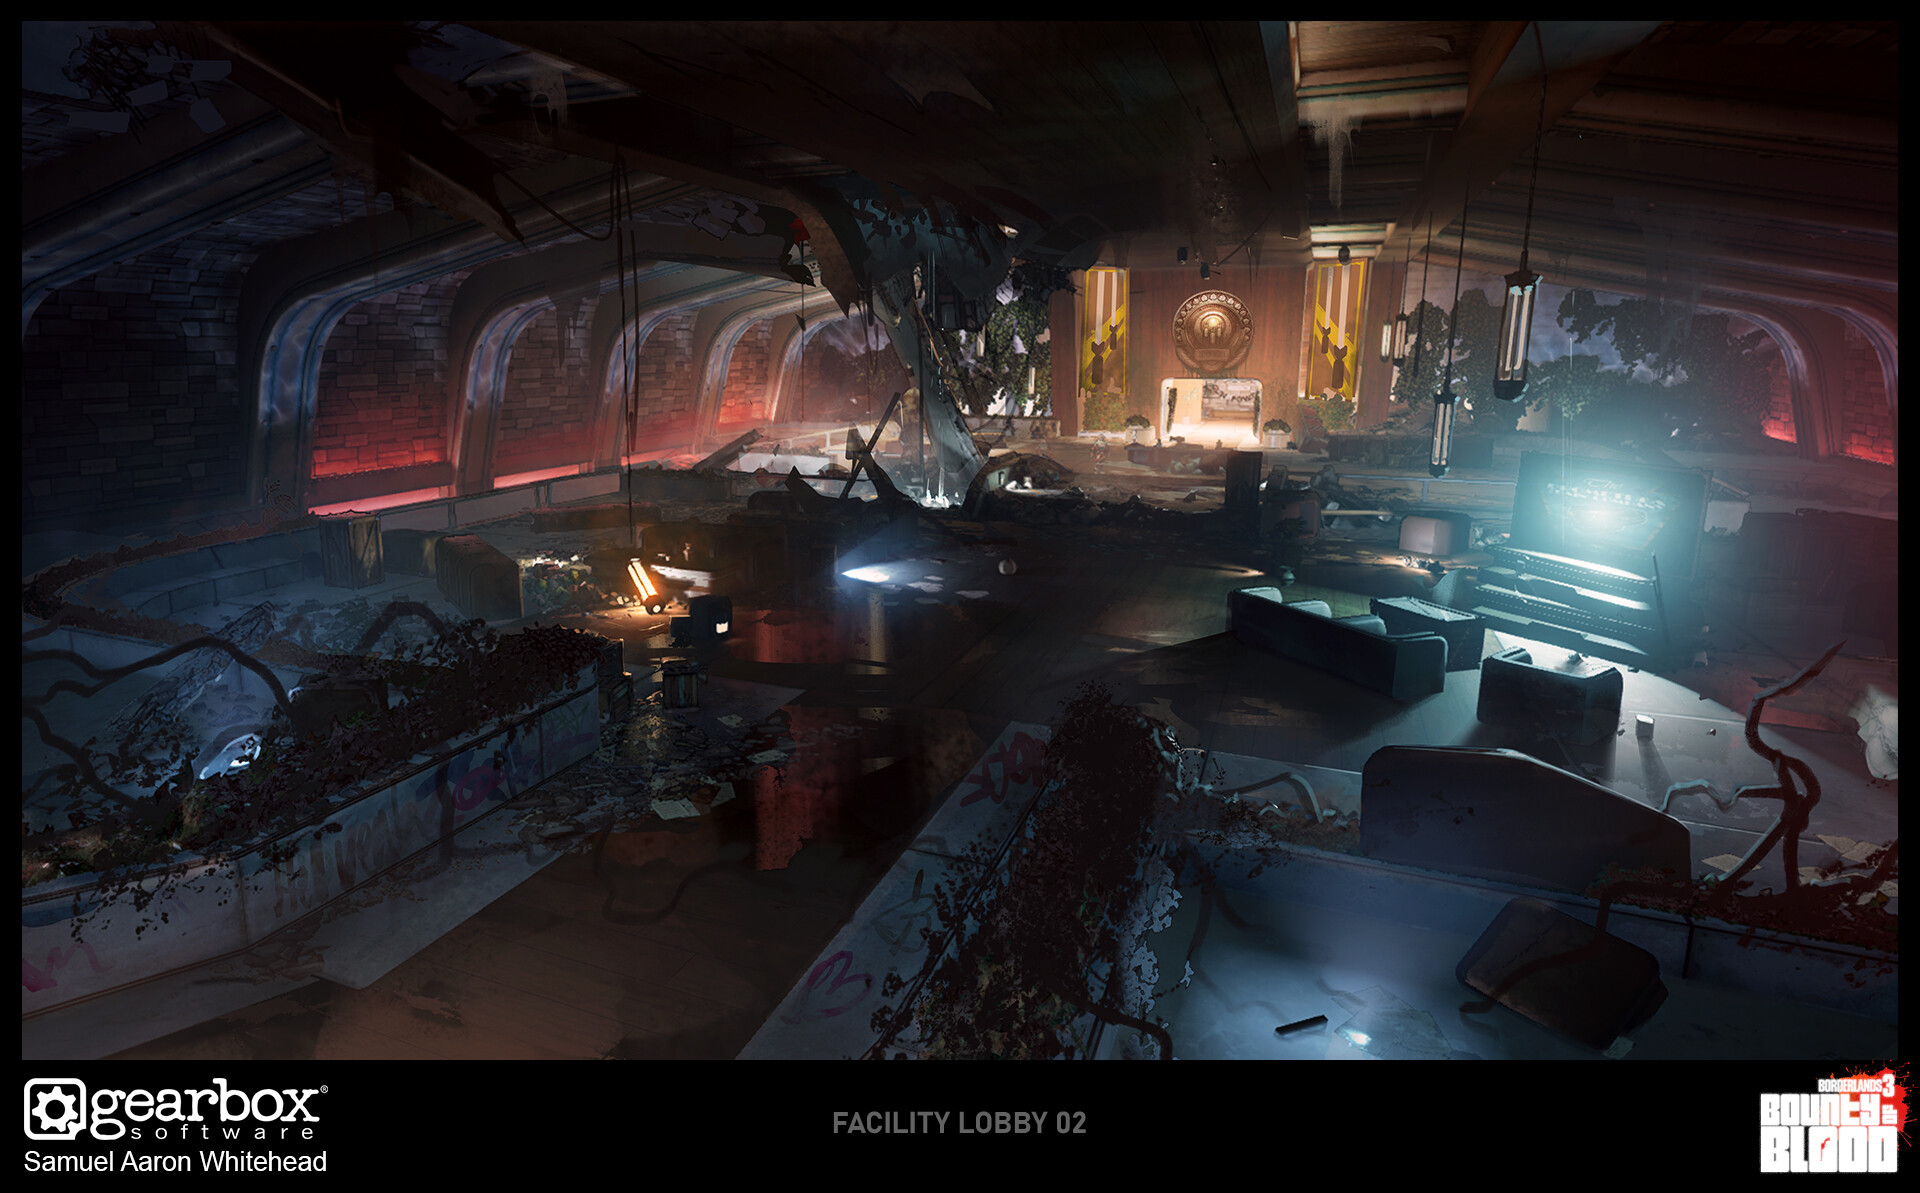 We didn't know how old or damaged the facility would be therefor some locations were designed pristine and were then layered with destruction. In this case the lobby has been completely trashed by the Devil Rider gang who might have used it for partying.